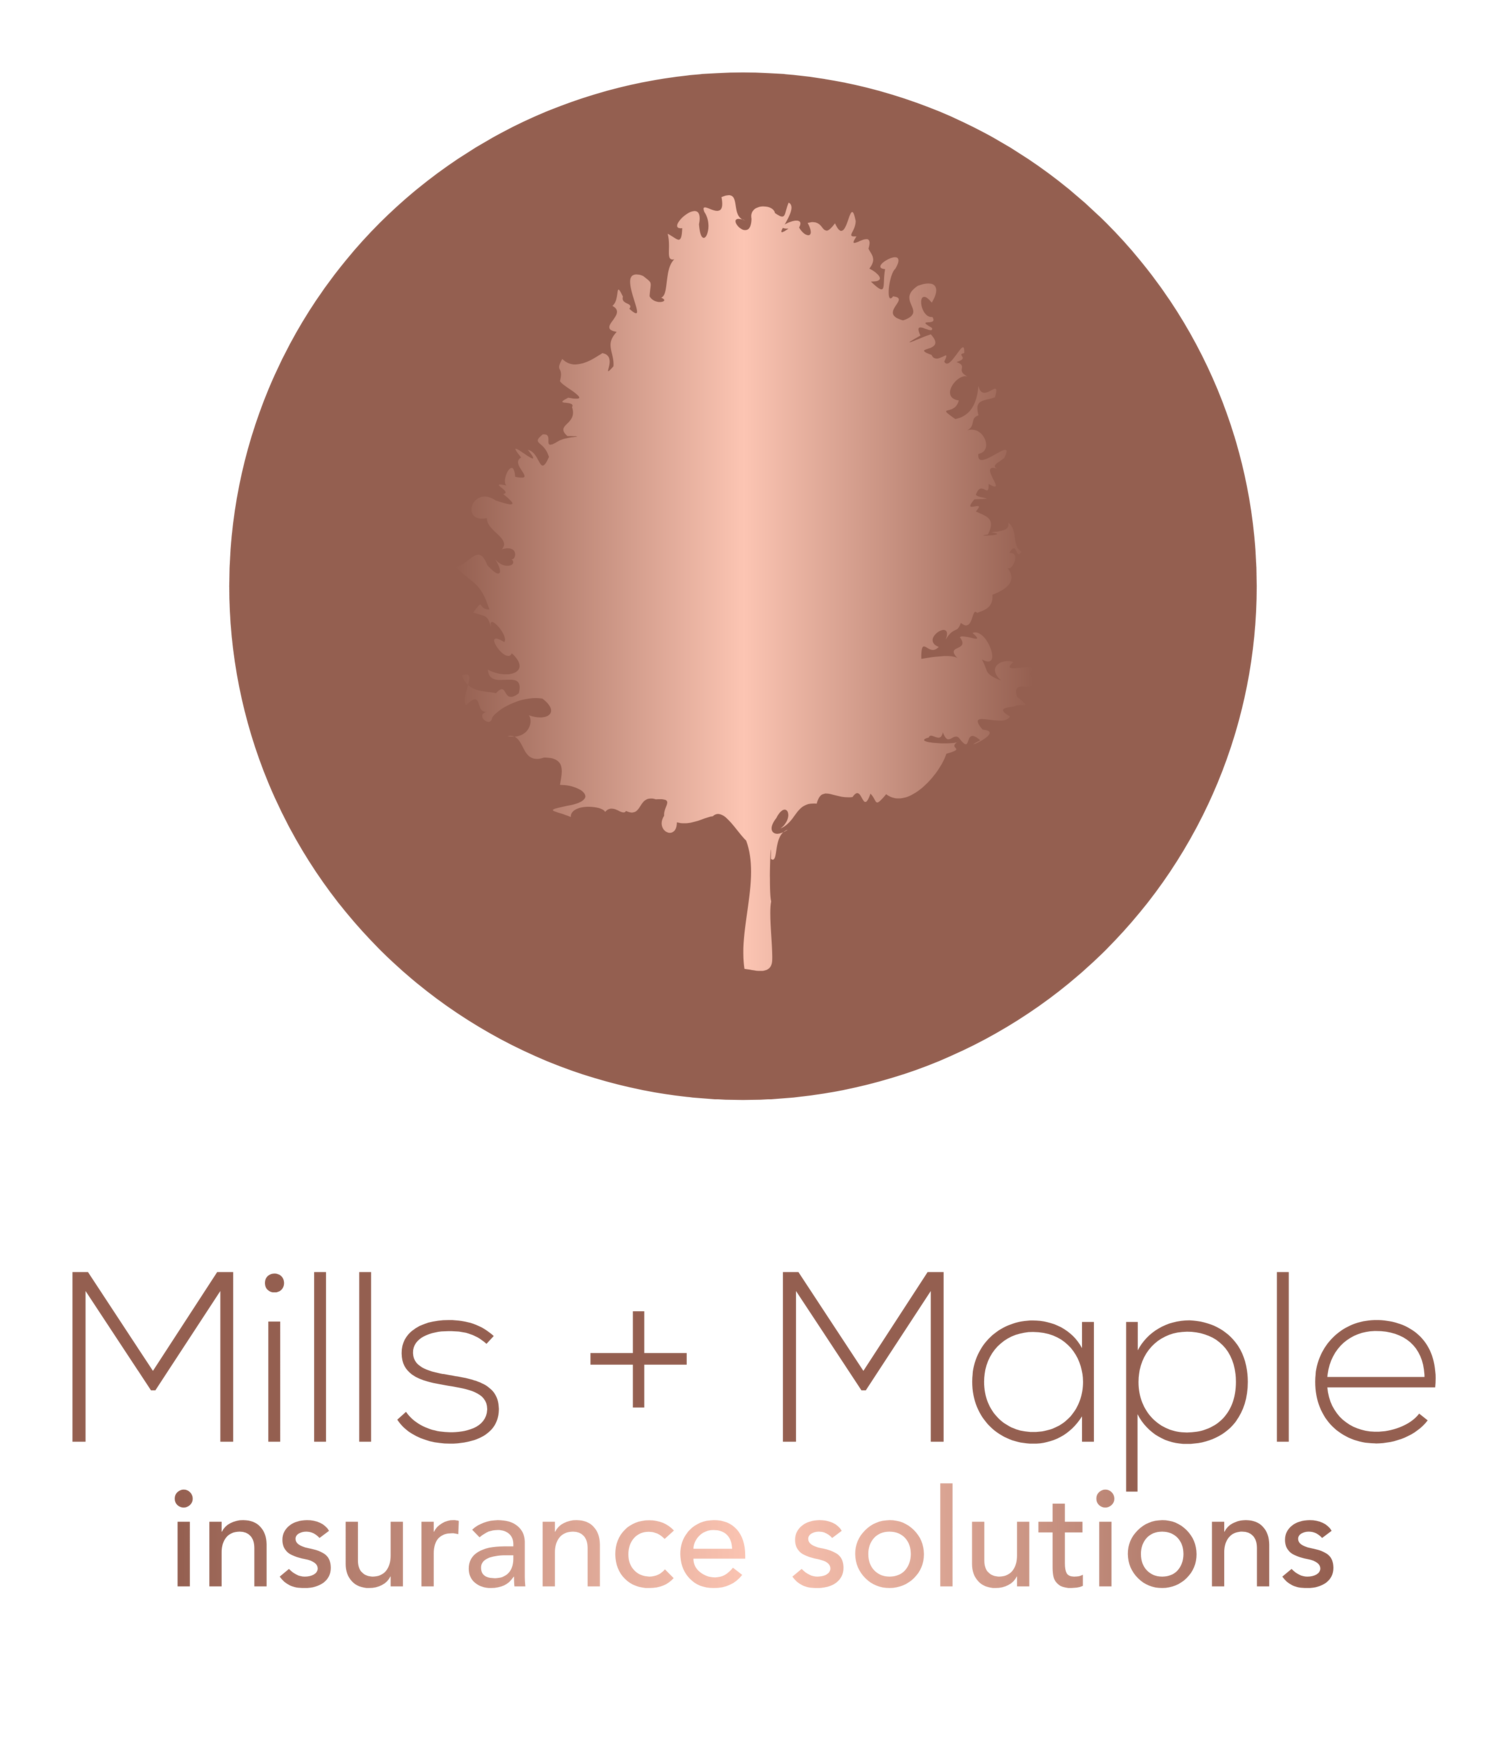 Mills + Maple insurance solutions